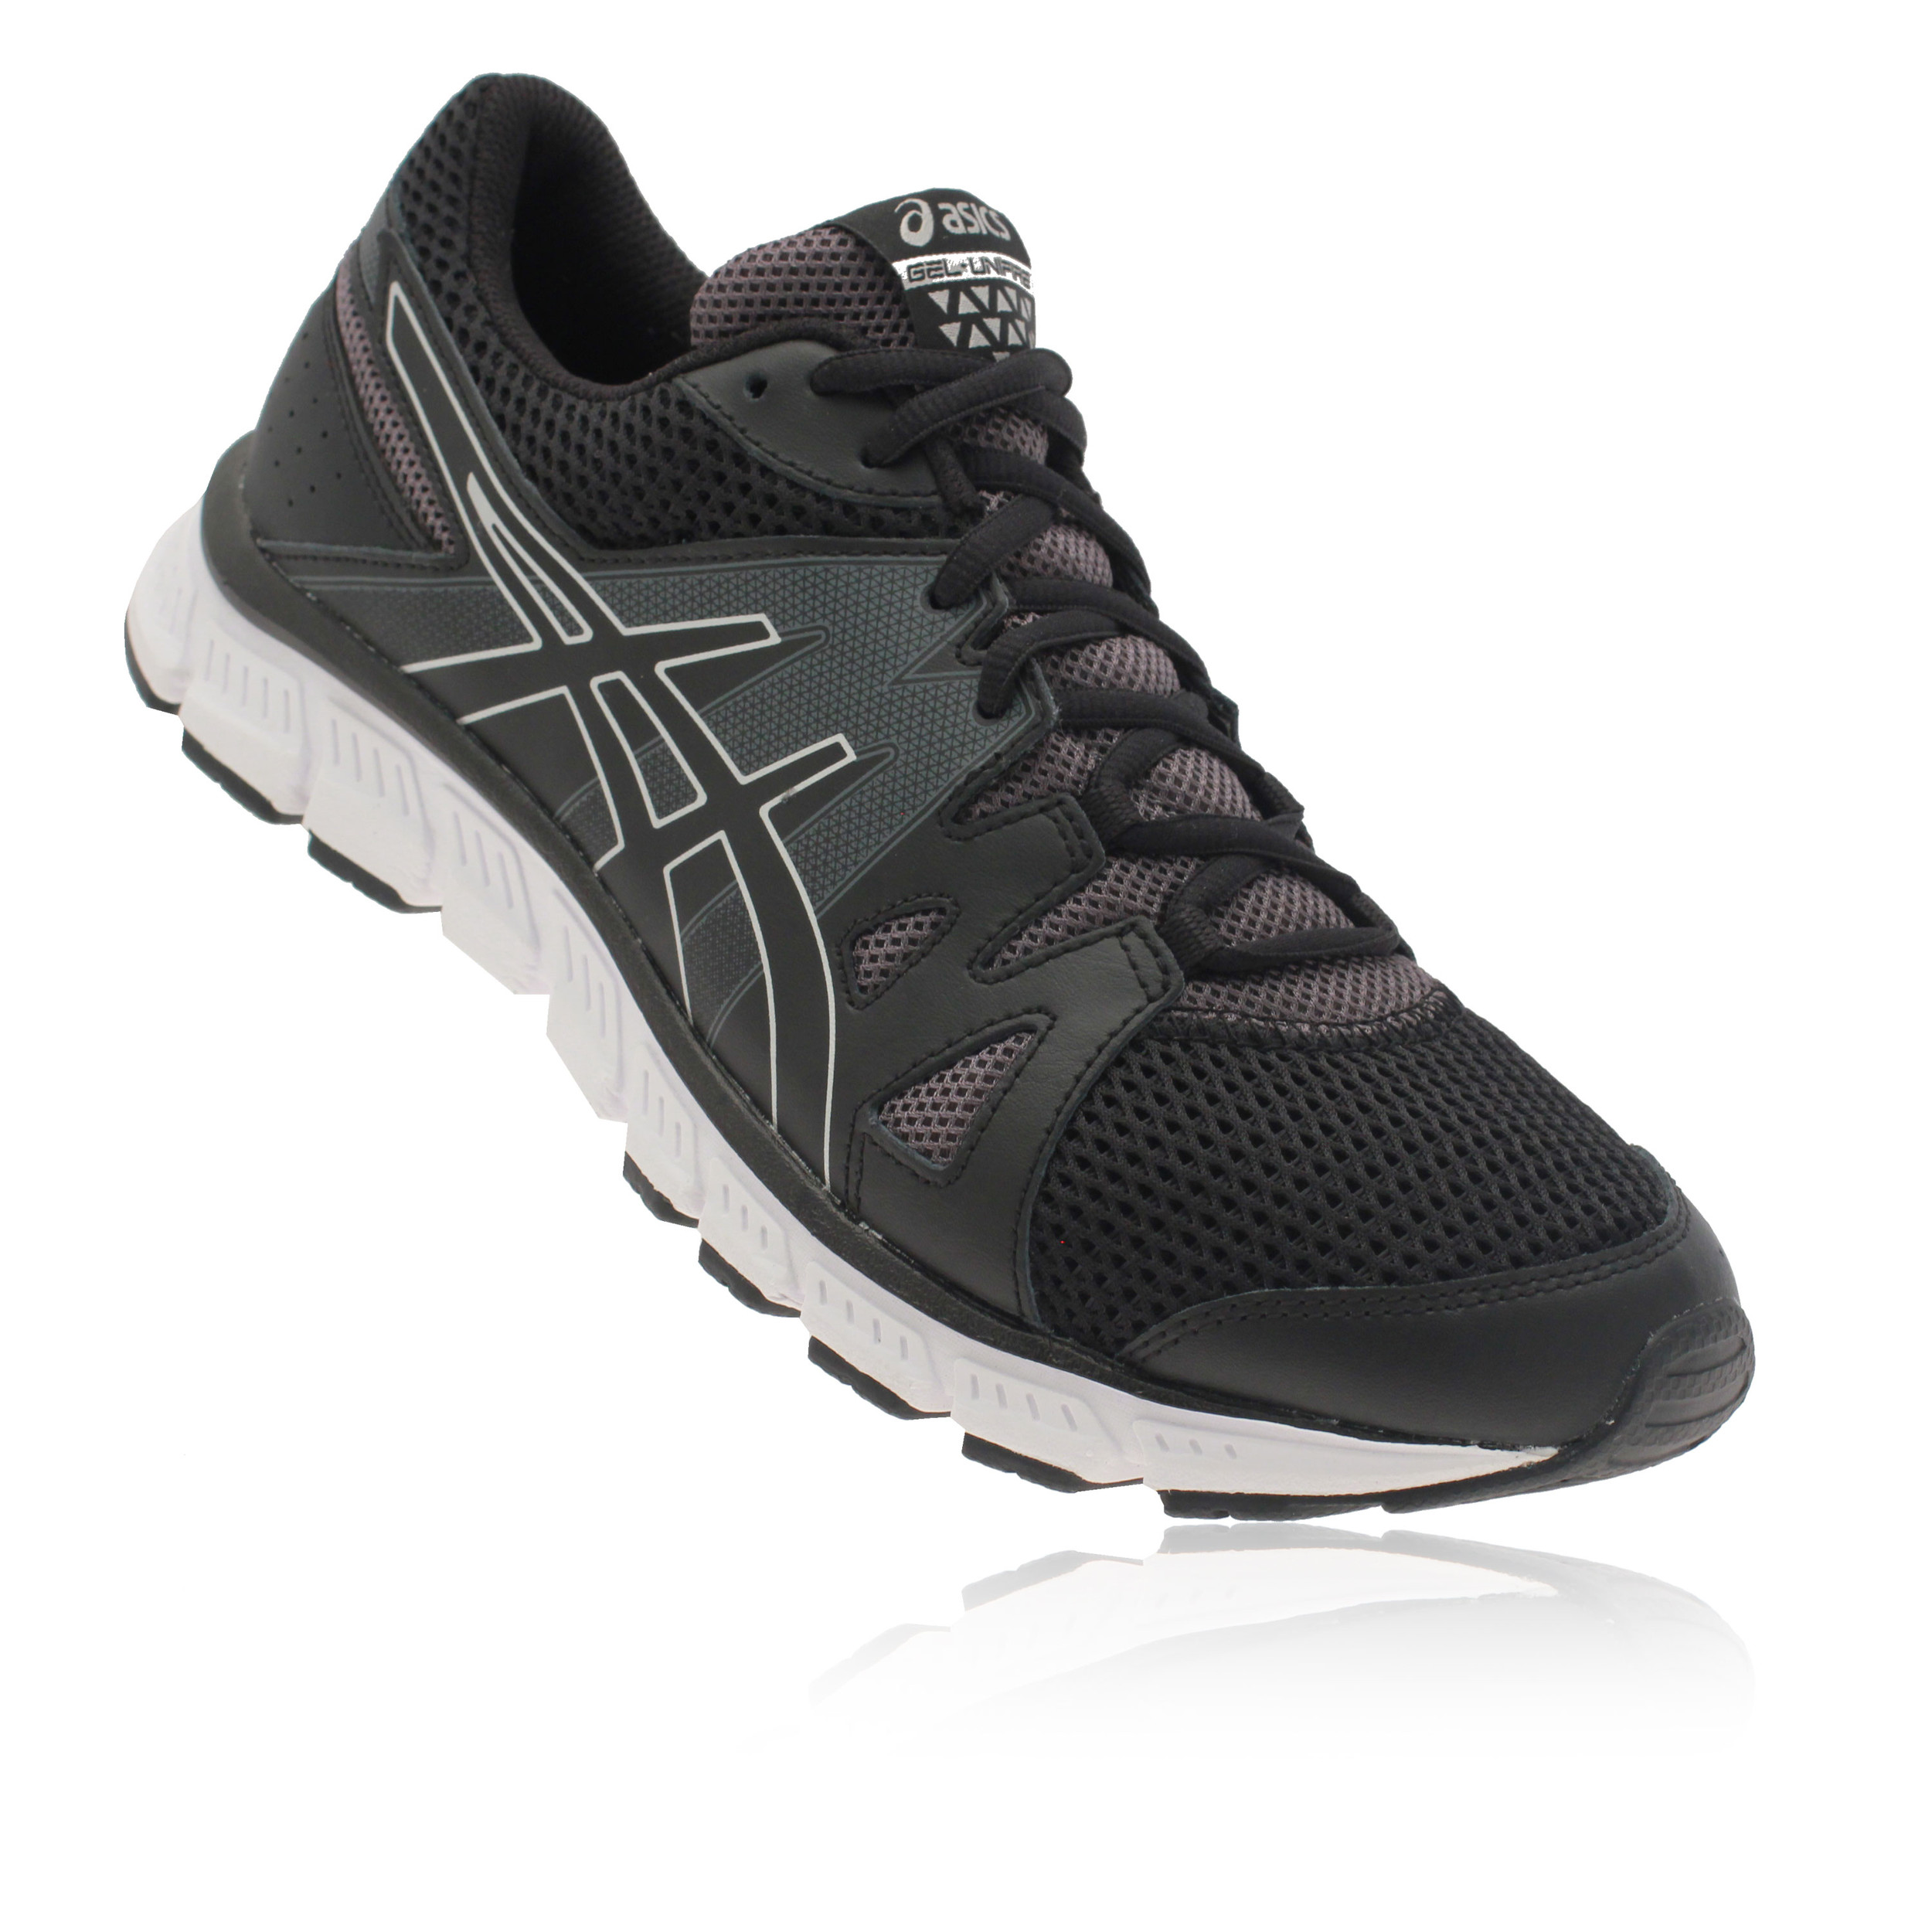 ASICS GEL-UNIFIRE Training Shoes